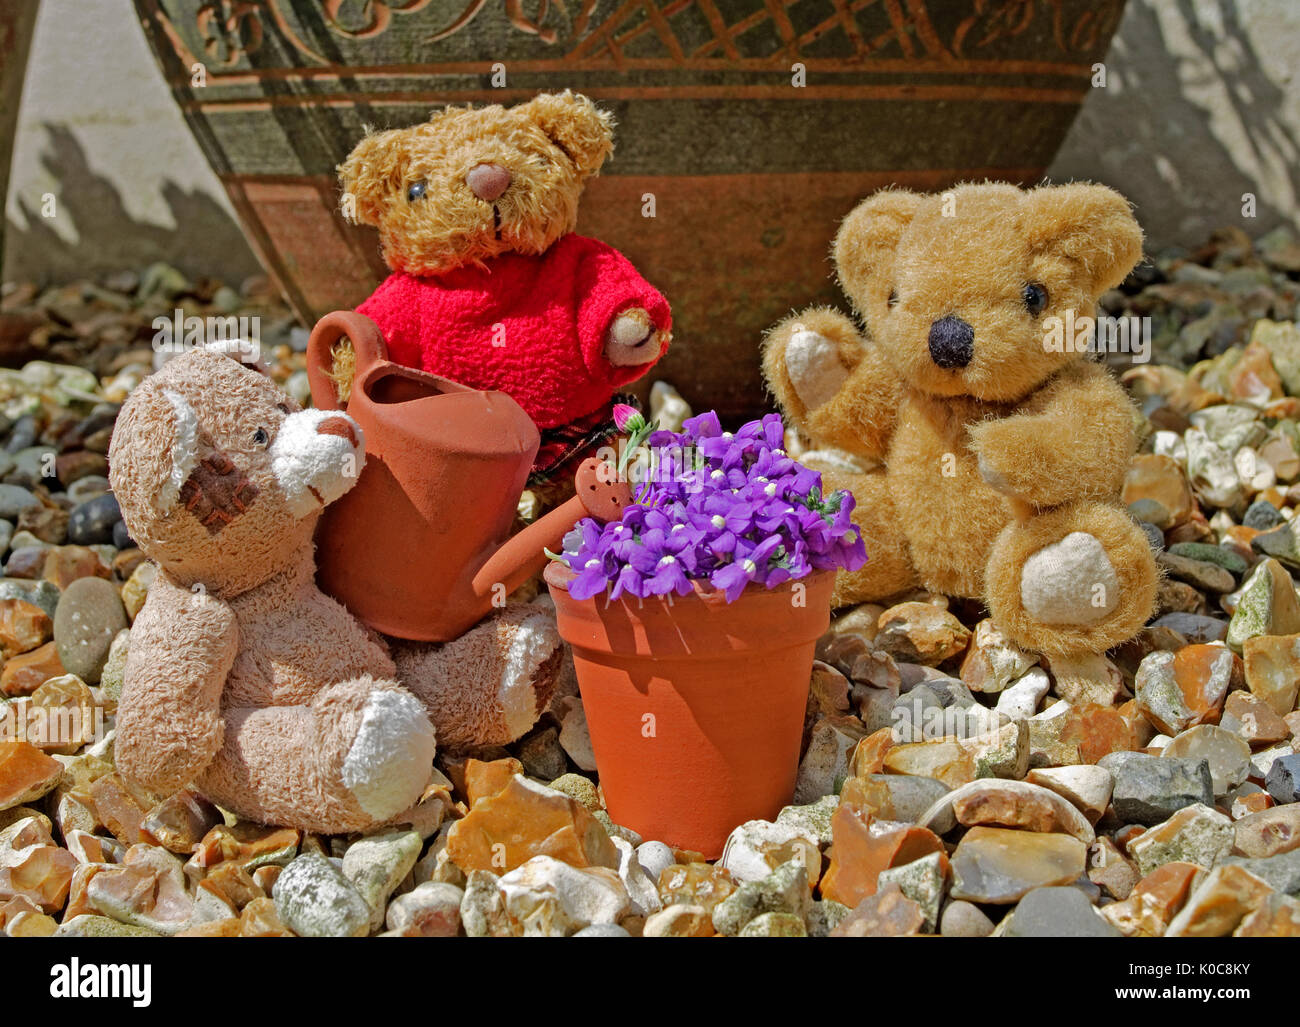 Tableau of miniature teddy bears in garden in summer sunshine with miniature clay watering can and flower pot. - Stock Image